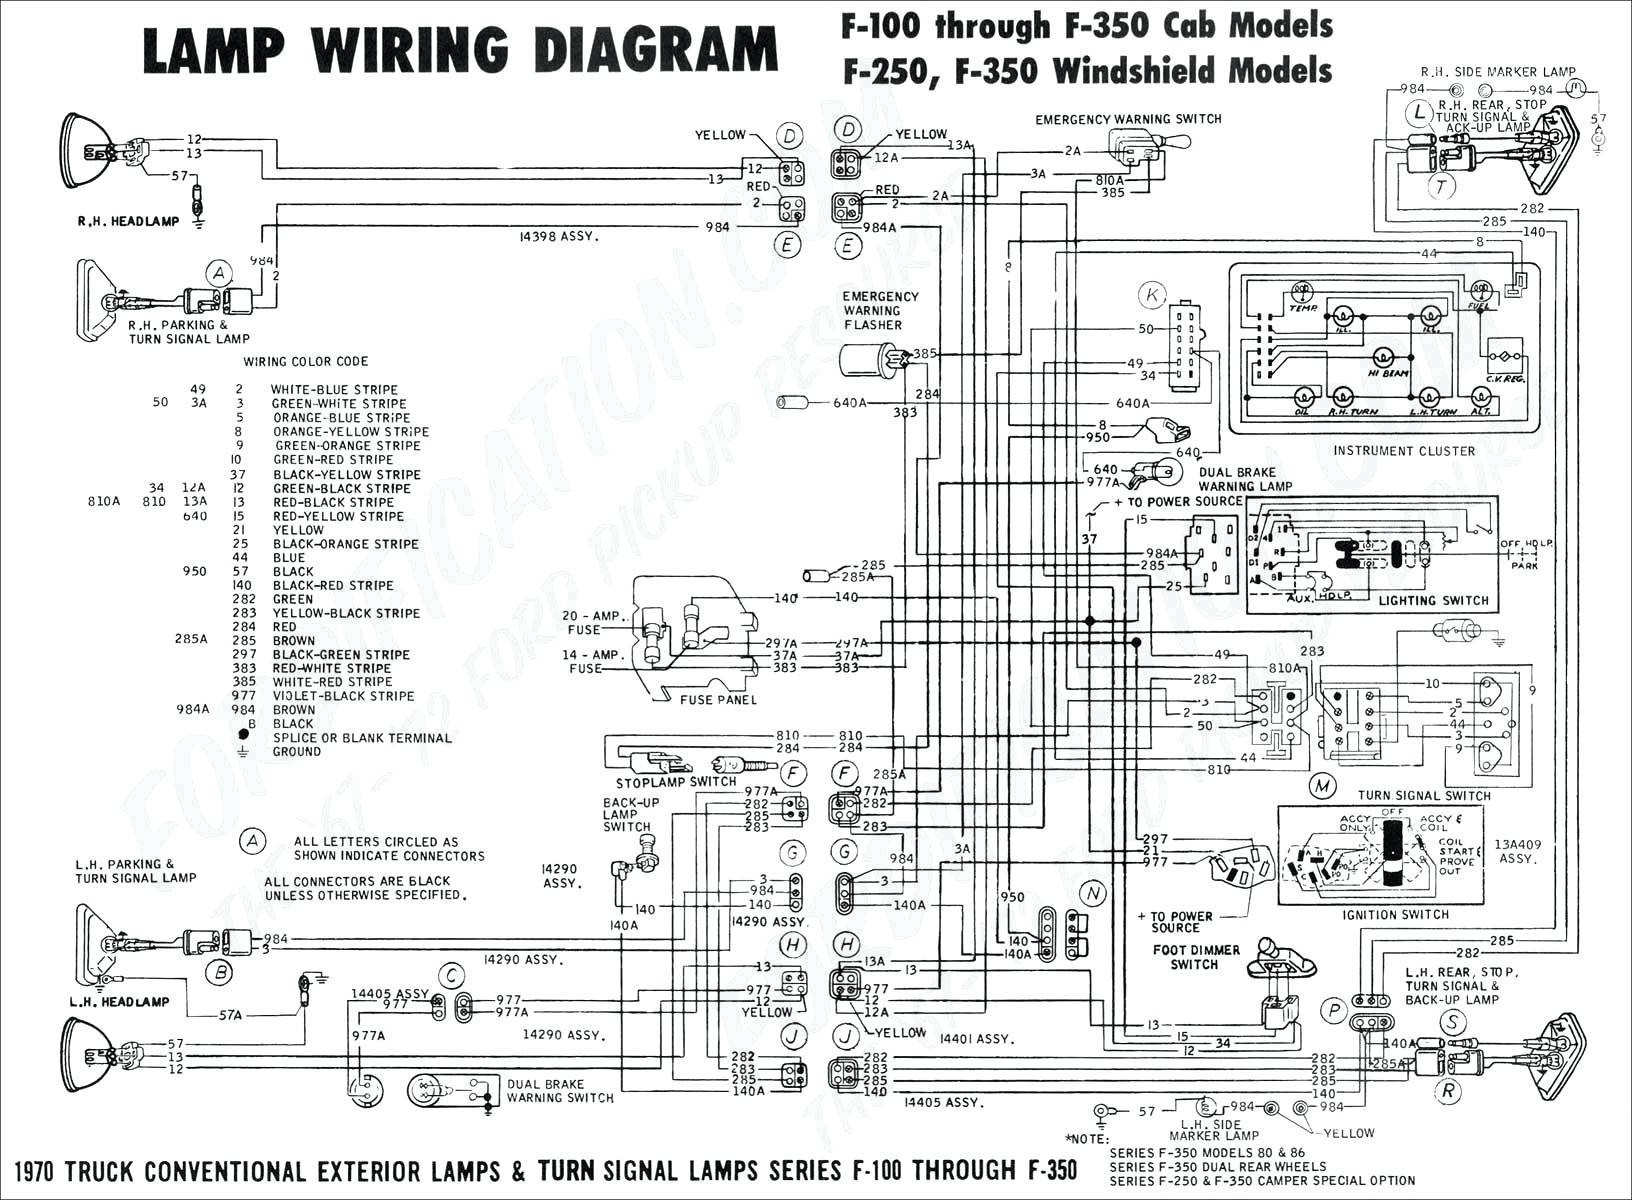 led trailer lights wiring diagram Download-Wiring Diagram Trailer Lights 2017 Wiring Diagram Boat Trailer Lights New Wiring Diagram Brake Lights 8-d